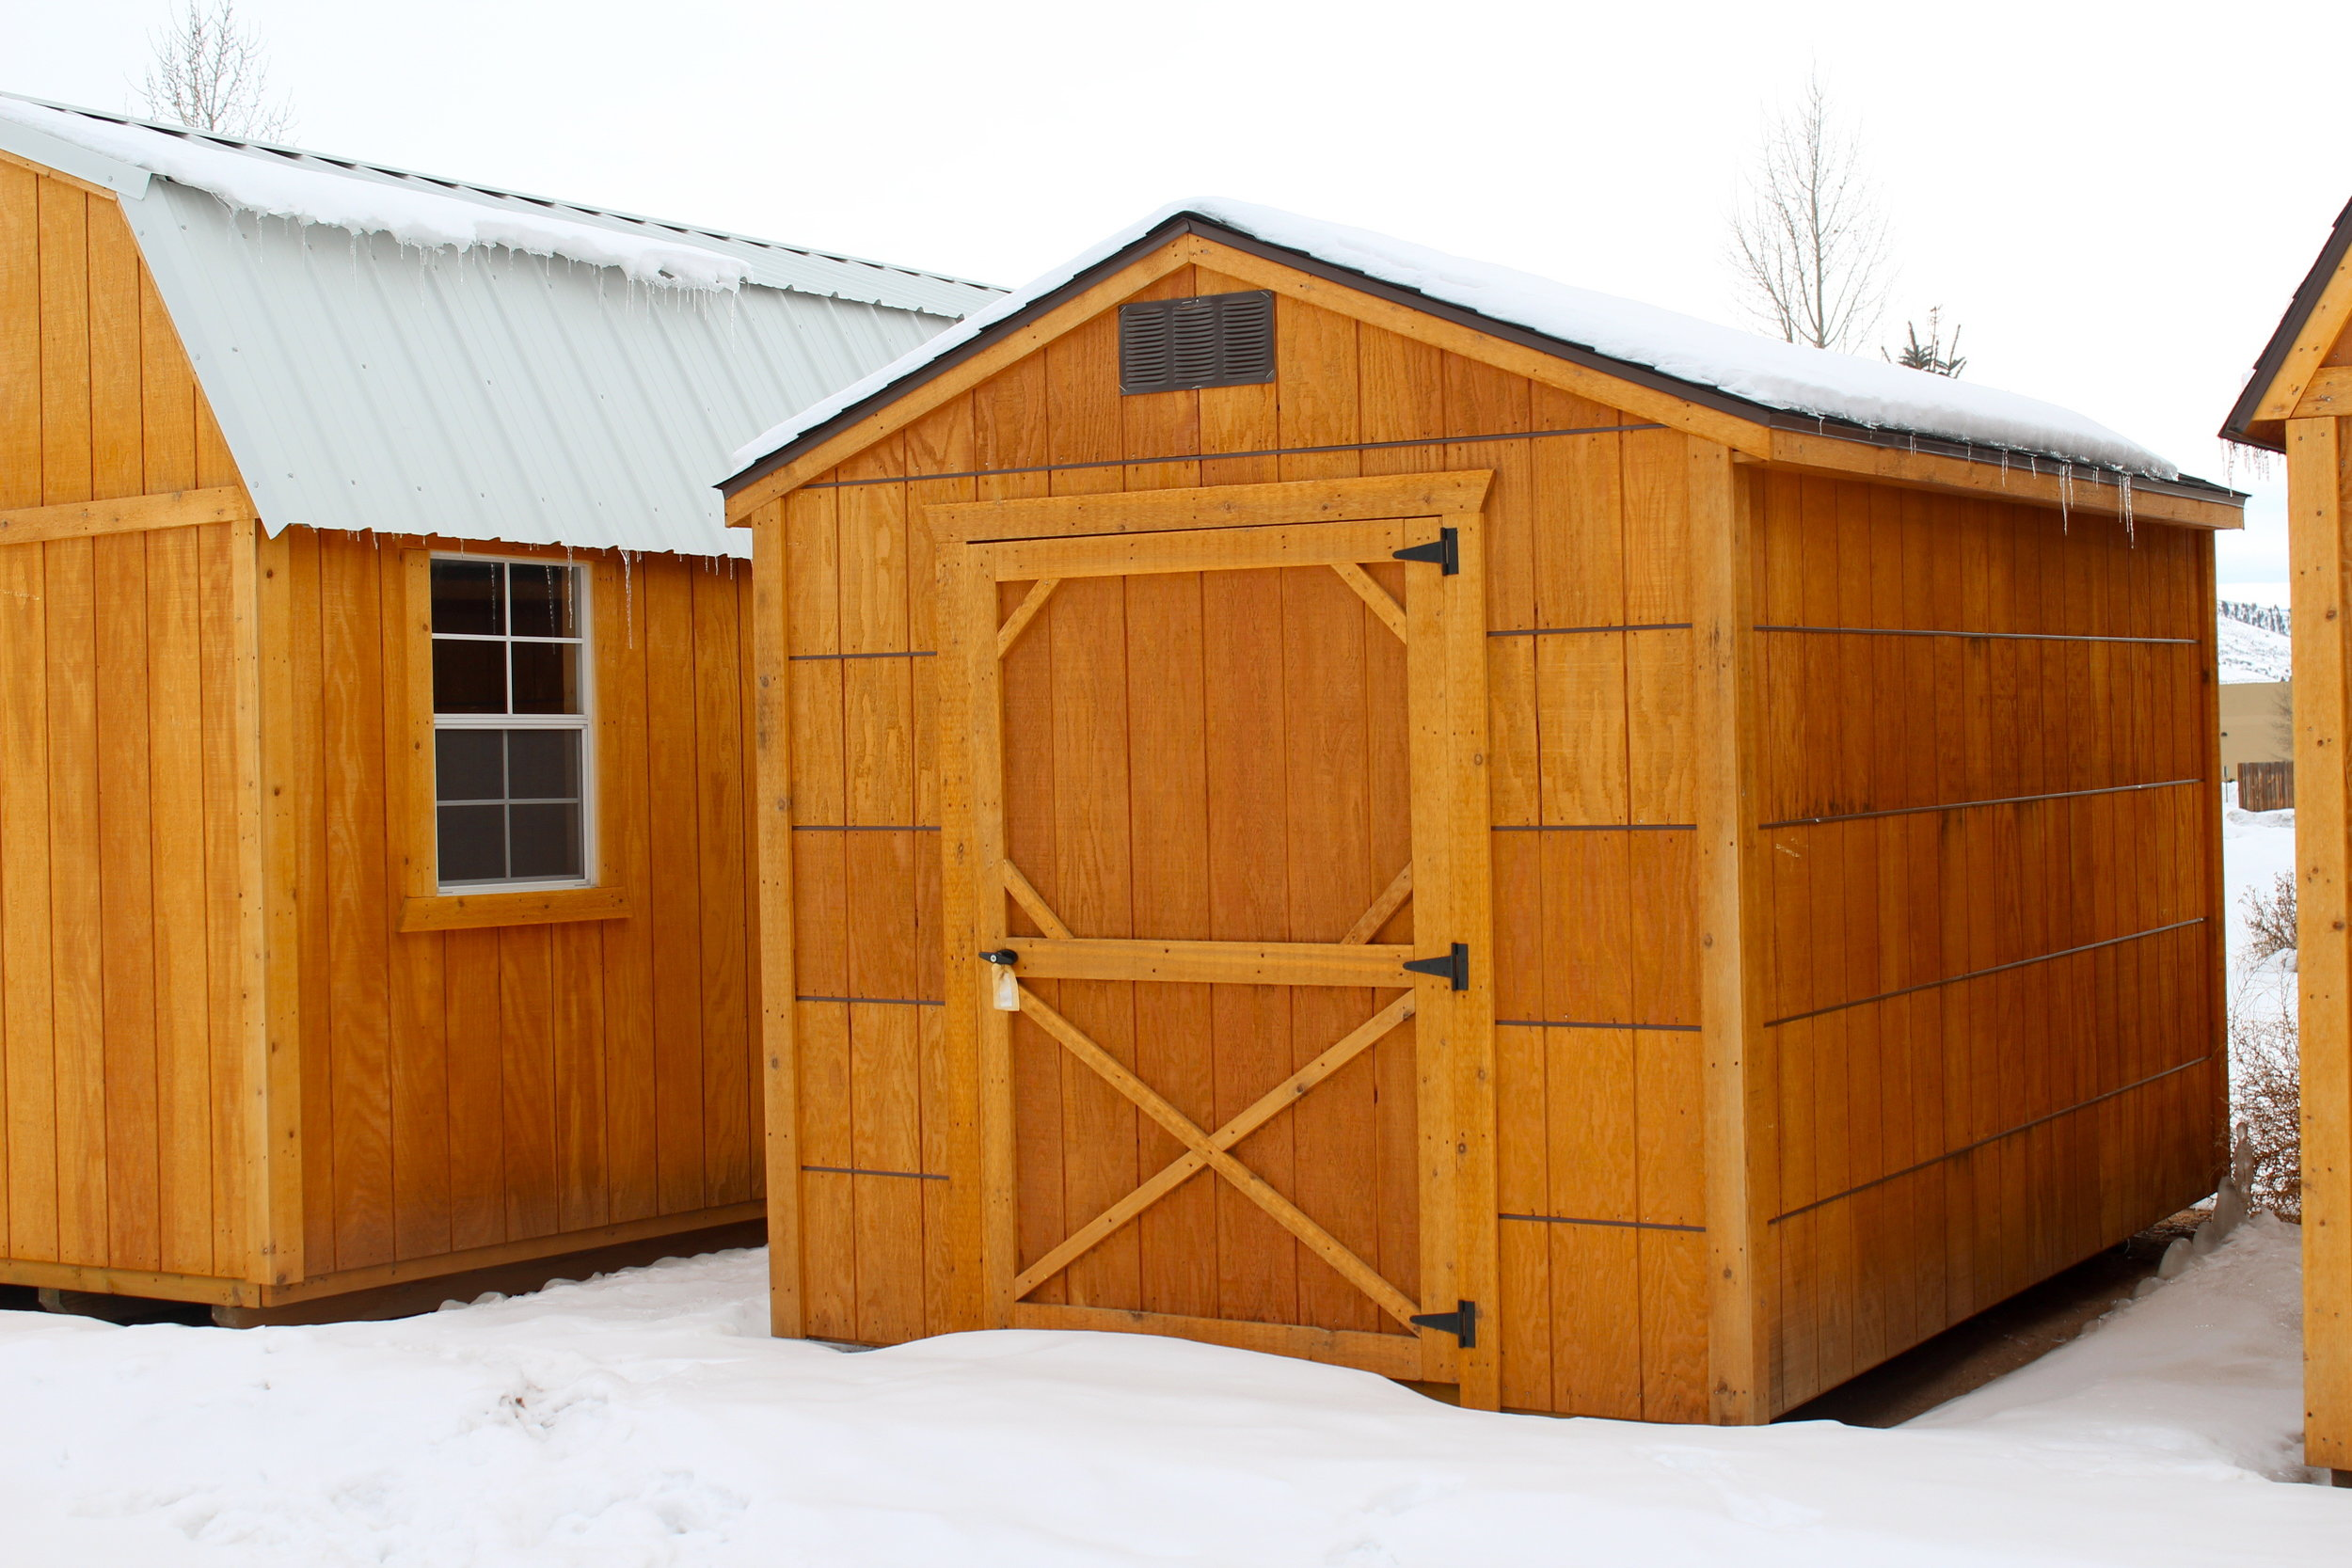 Winter Snow has began to accumulate around this Cumberland Economy Utility Shed.